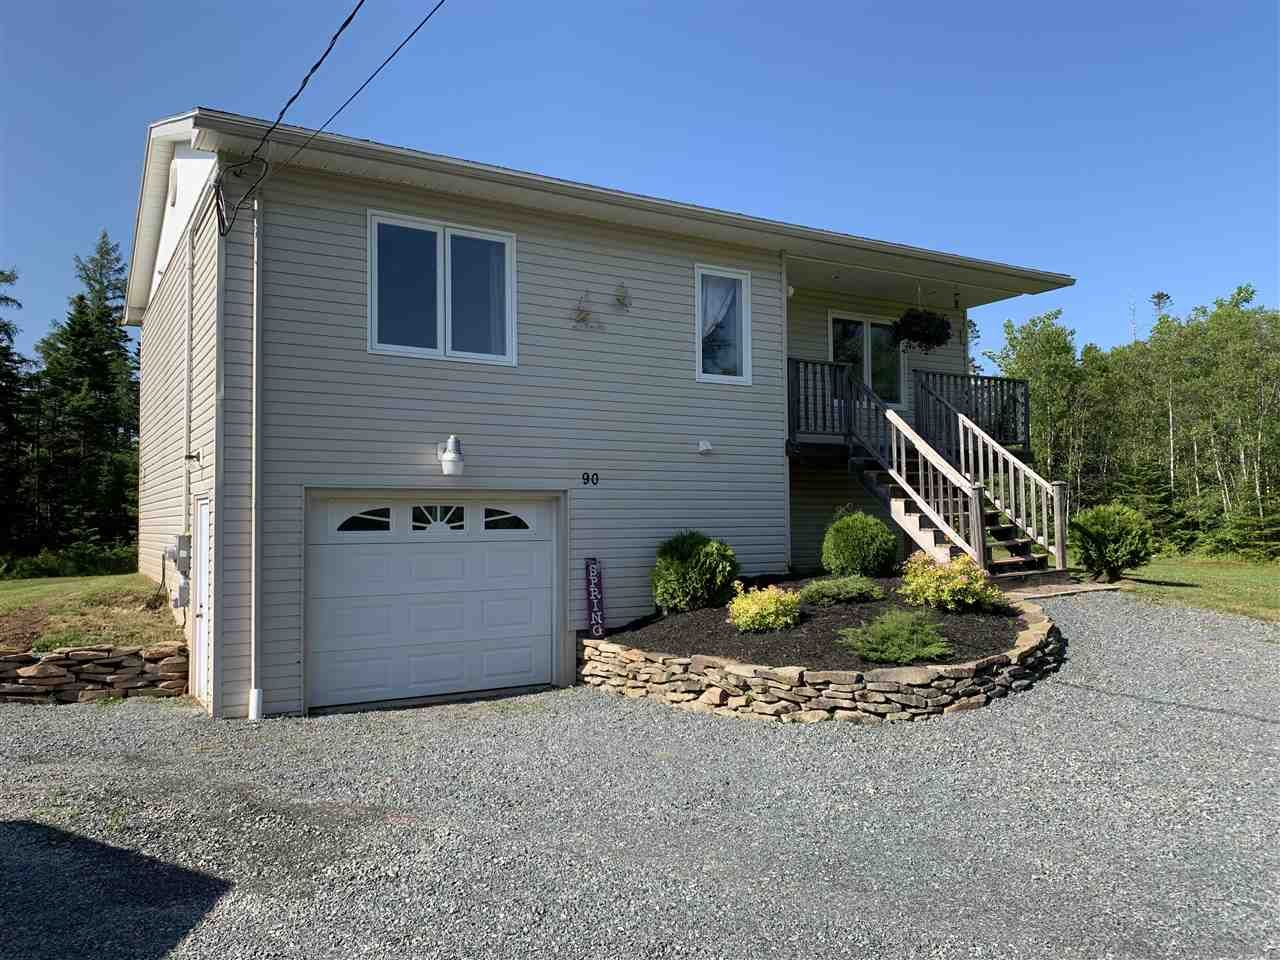 Main Photo: 90 Karen Avenue in Crowes Mills: 104-Truro/Bible Hill/Brookfield Residential for sale (Northern Region)  : MLS®# 202012713